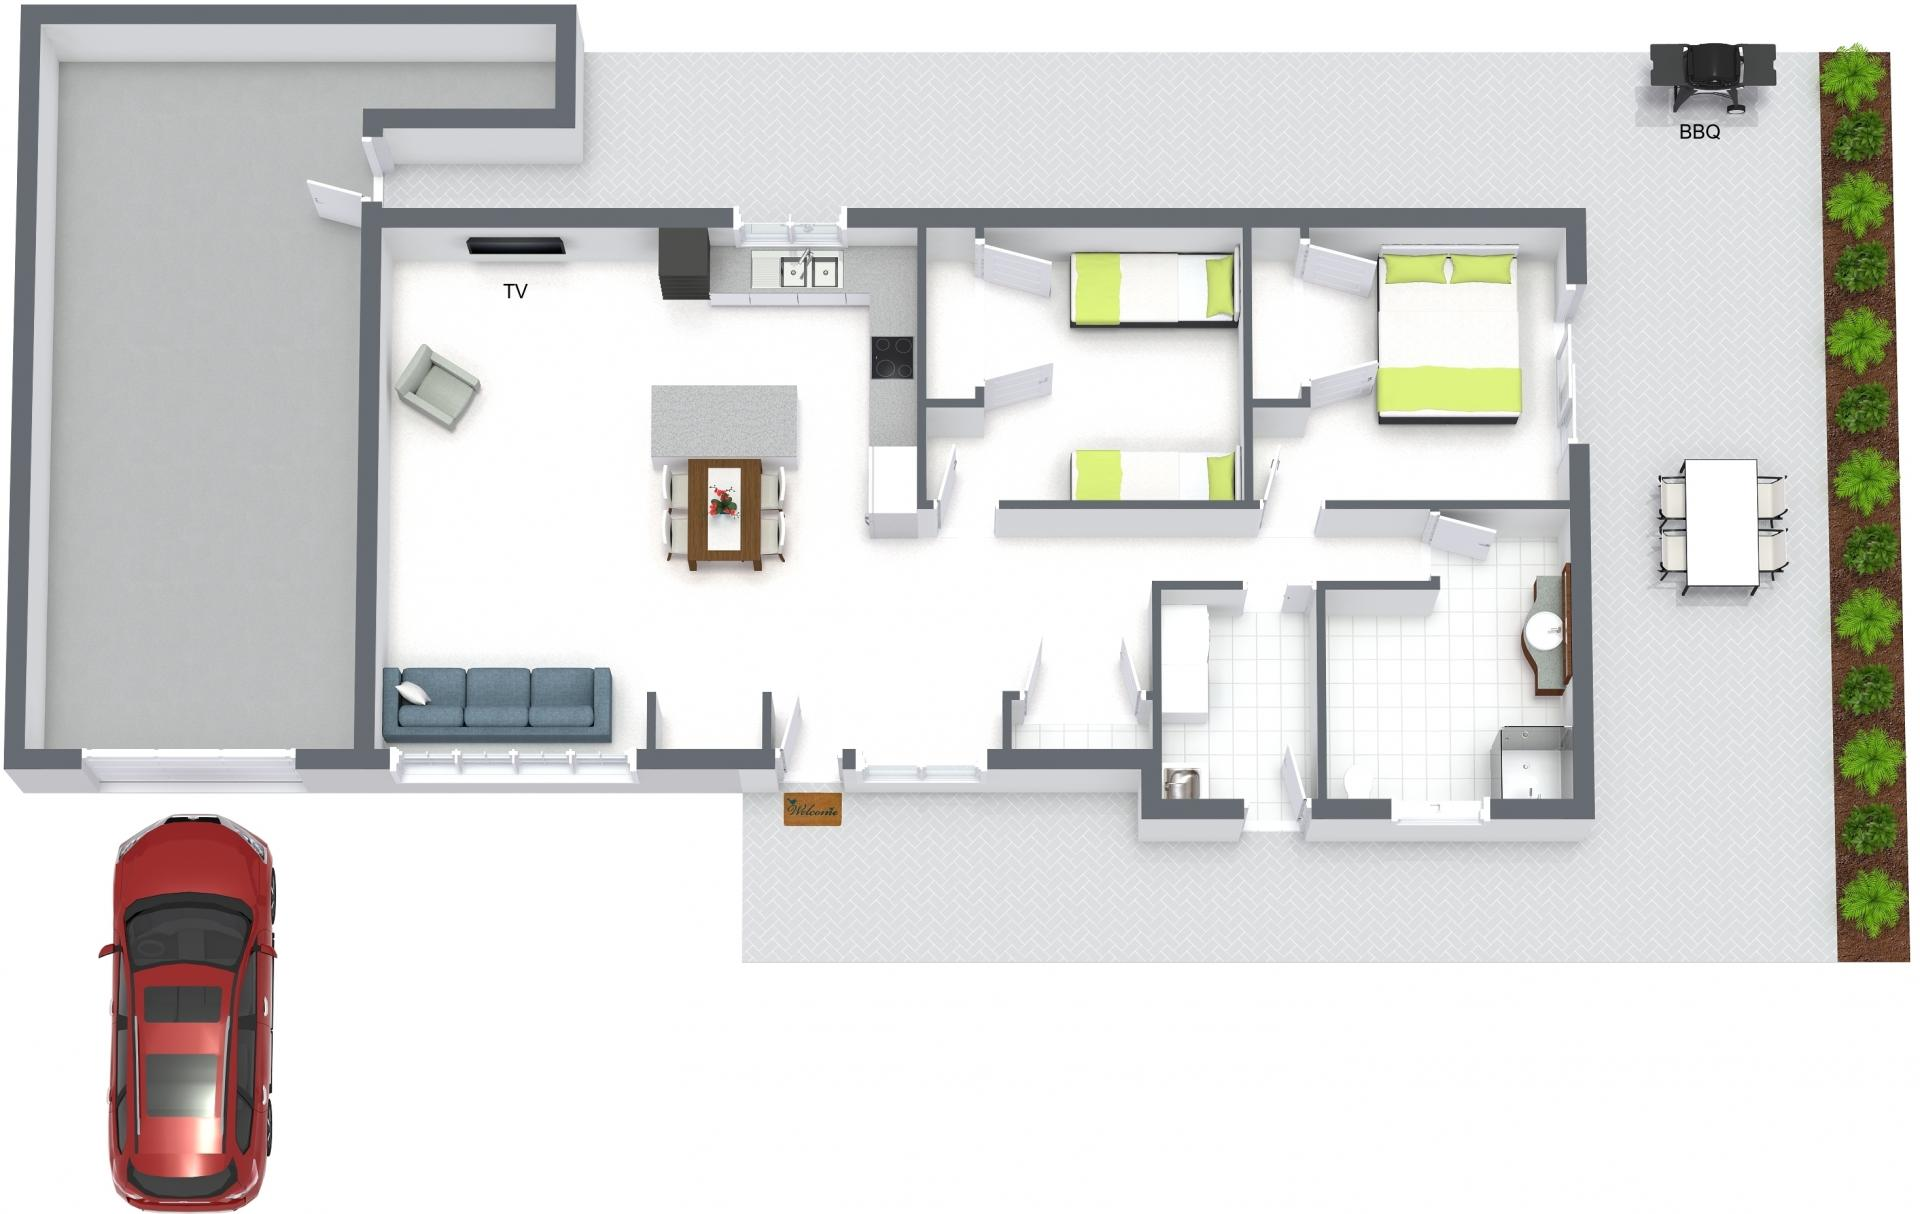 Floor plan of Sandy Breeze Apartment, Sandringham, Melbourne